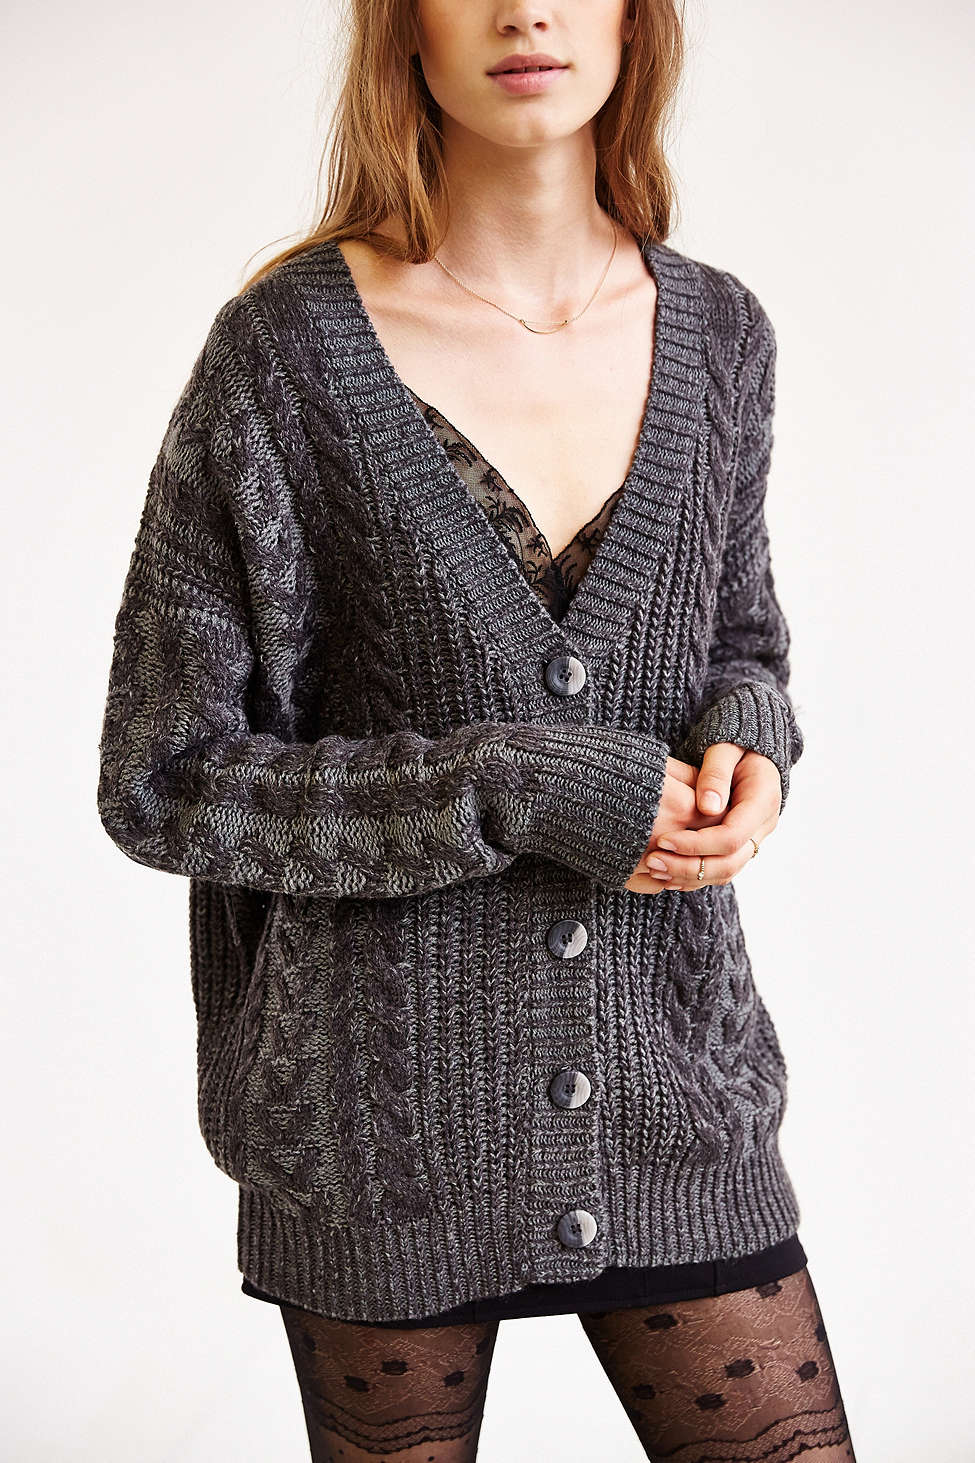 Because we really want you to be cozy: ALL sweaters are now 25% off, in stores and online! http://t.co/ebSEvQl4uP http://t.co/hJ74YYh9Px